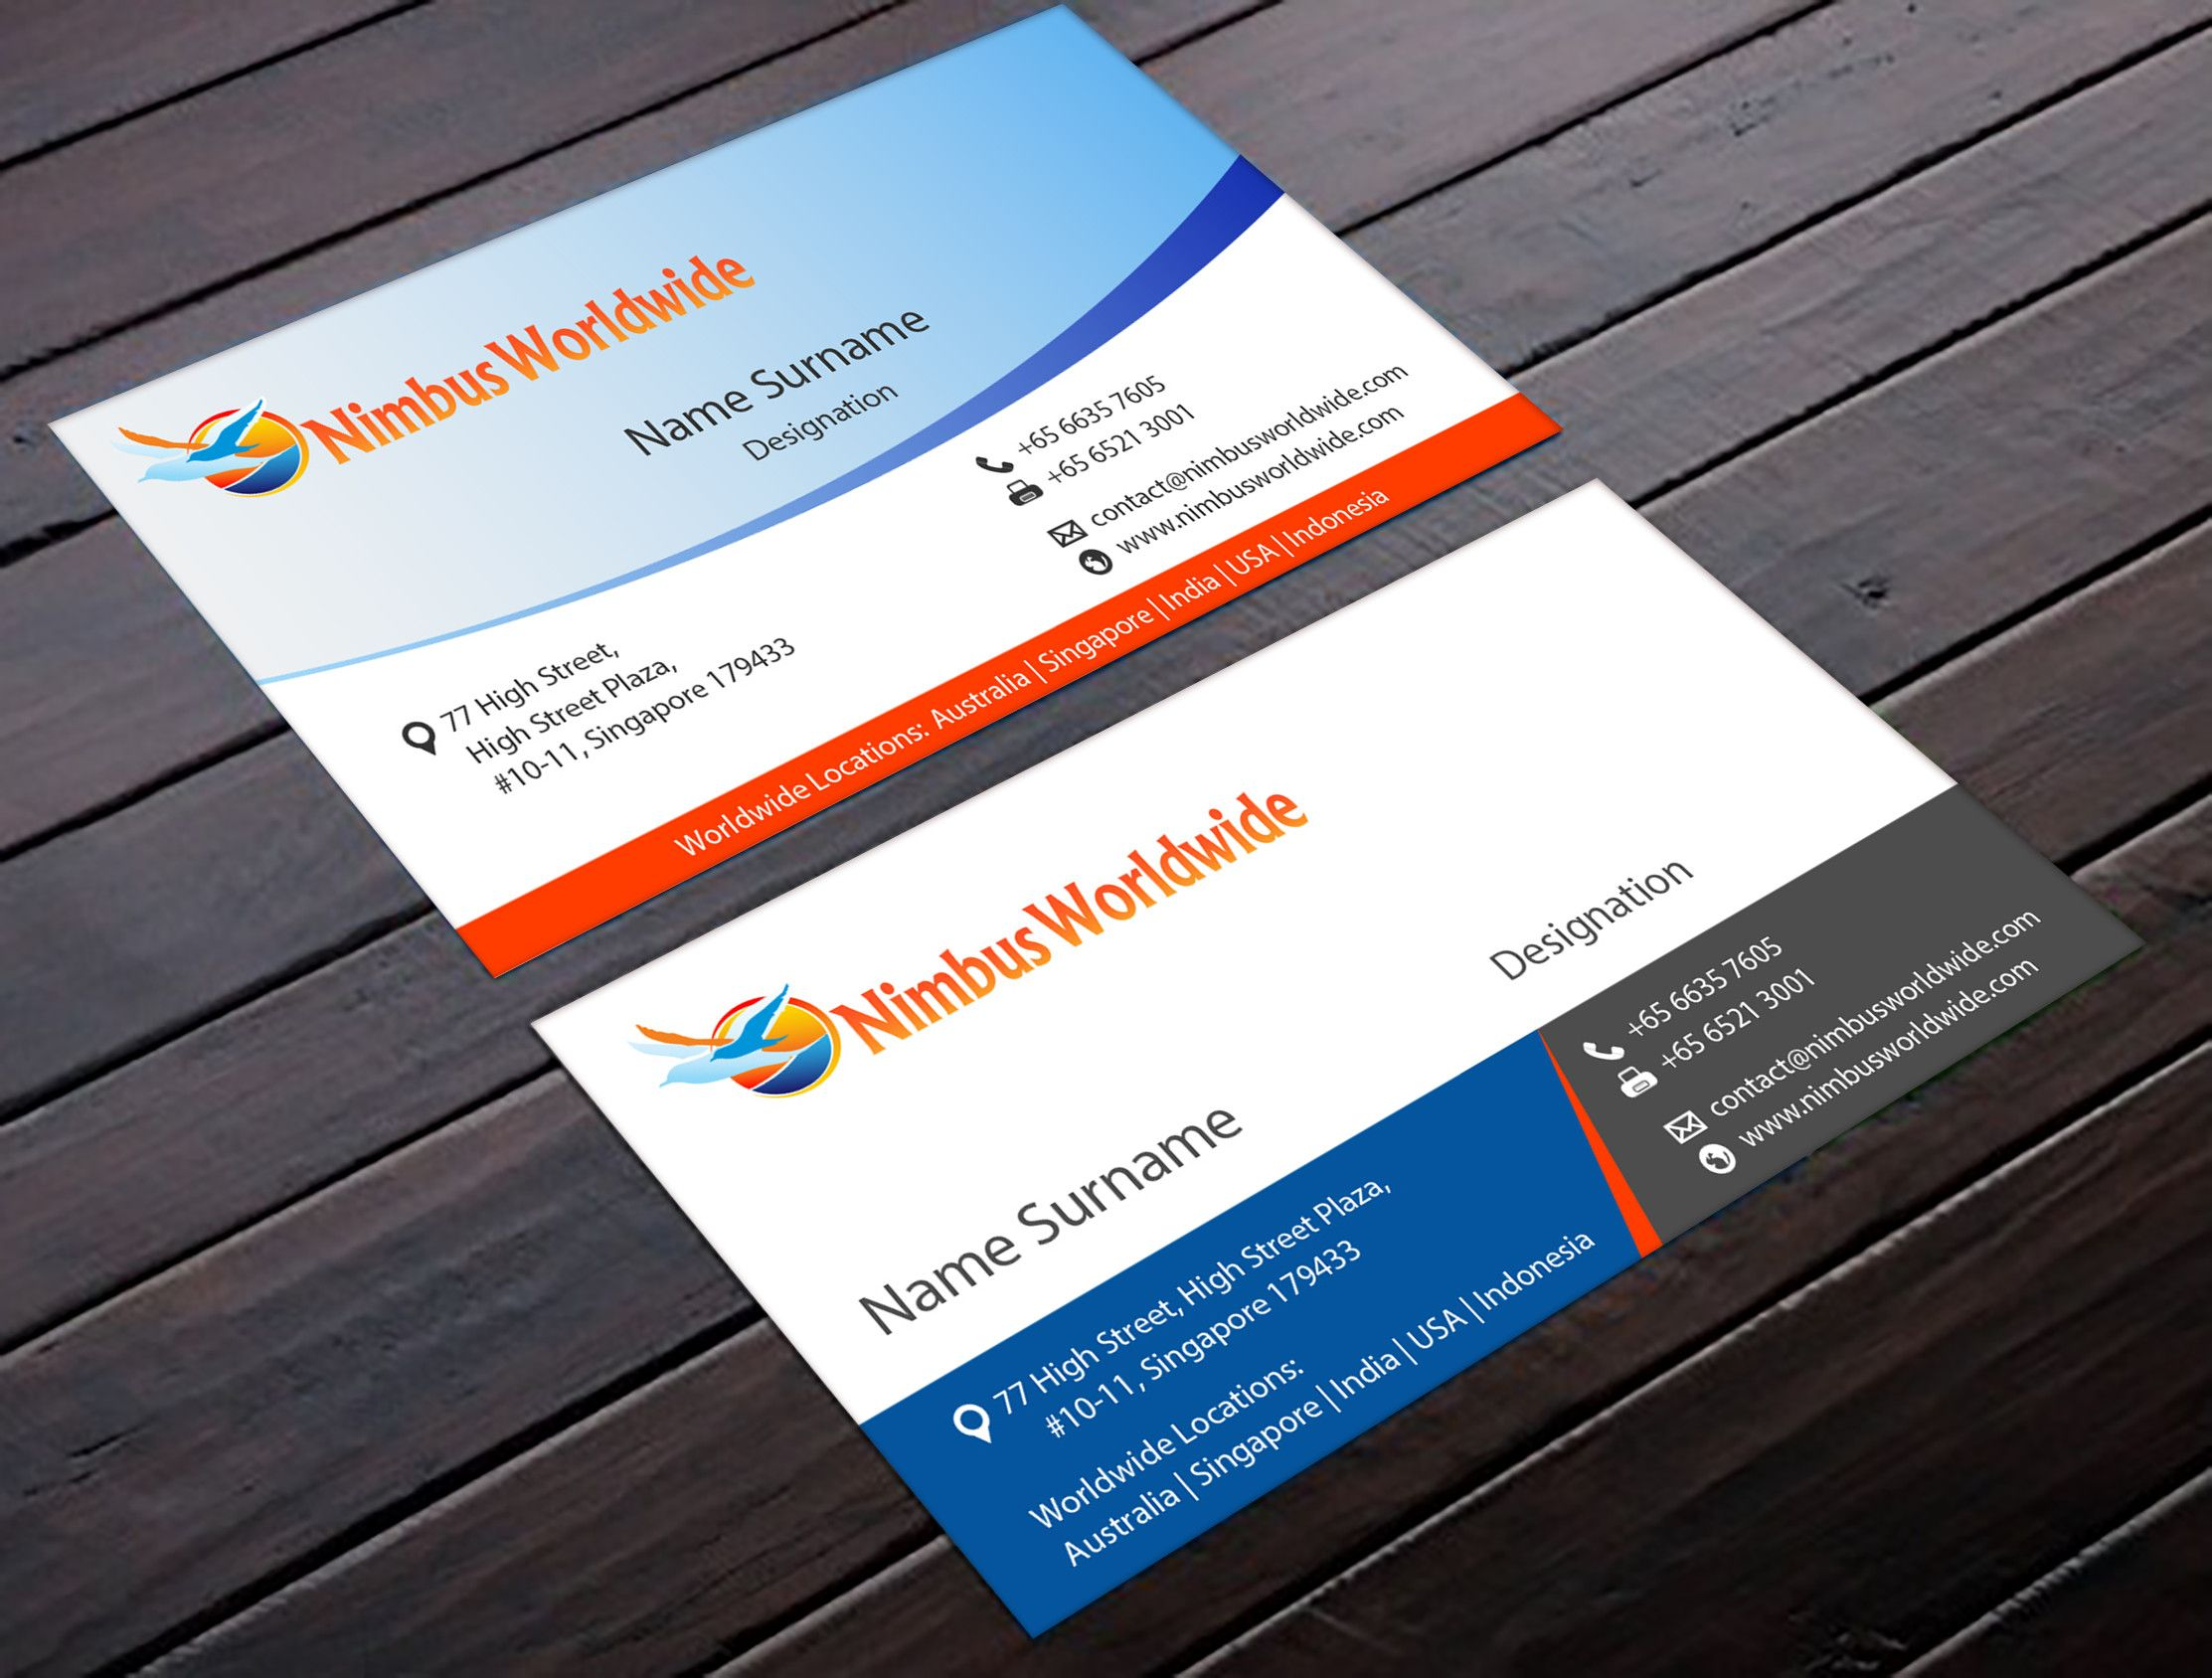 Shirazyasin i will create modern cut out business cards for 15 on only for 5 on fiverr i will create 2 singledouble sided professional and elegant business card designs with 3d mock up 5 revisions absolutely free reheart Choice Image